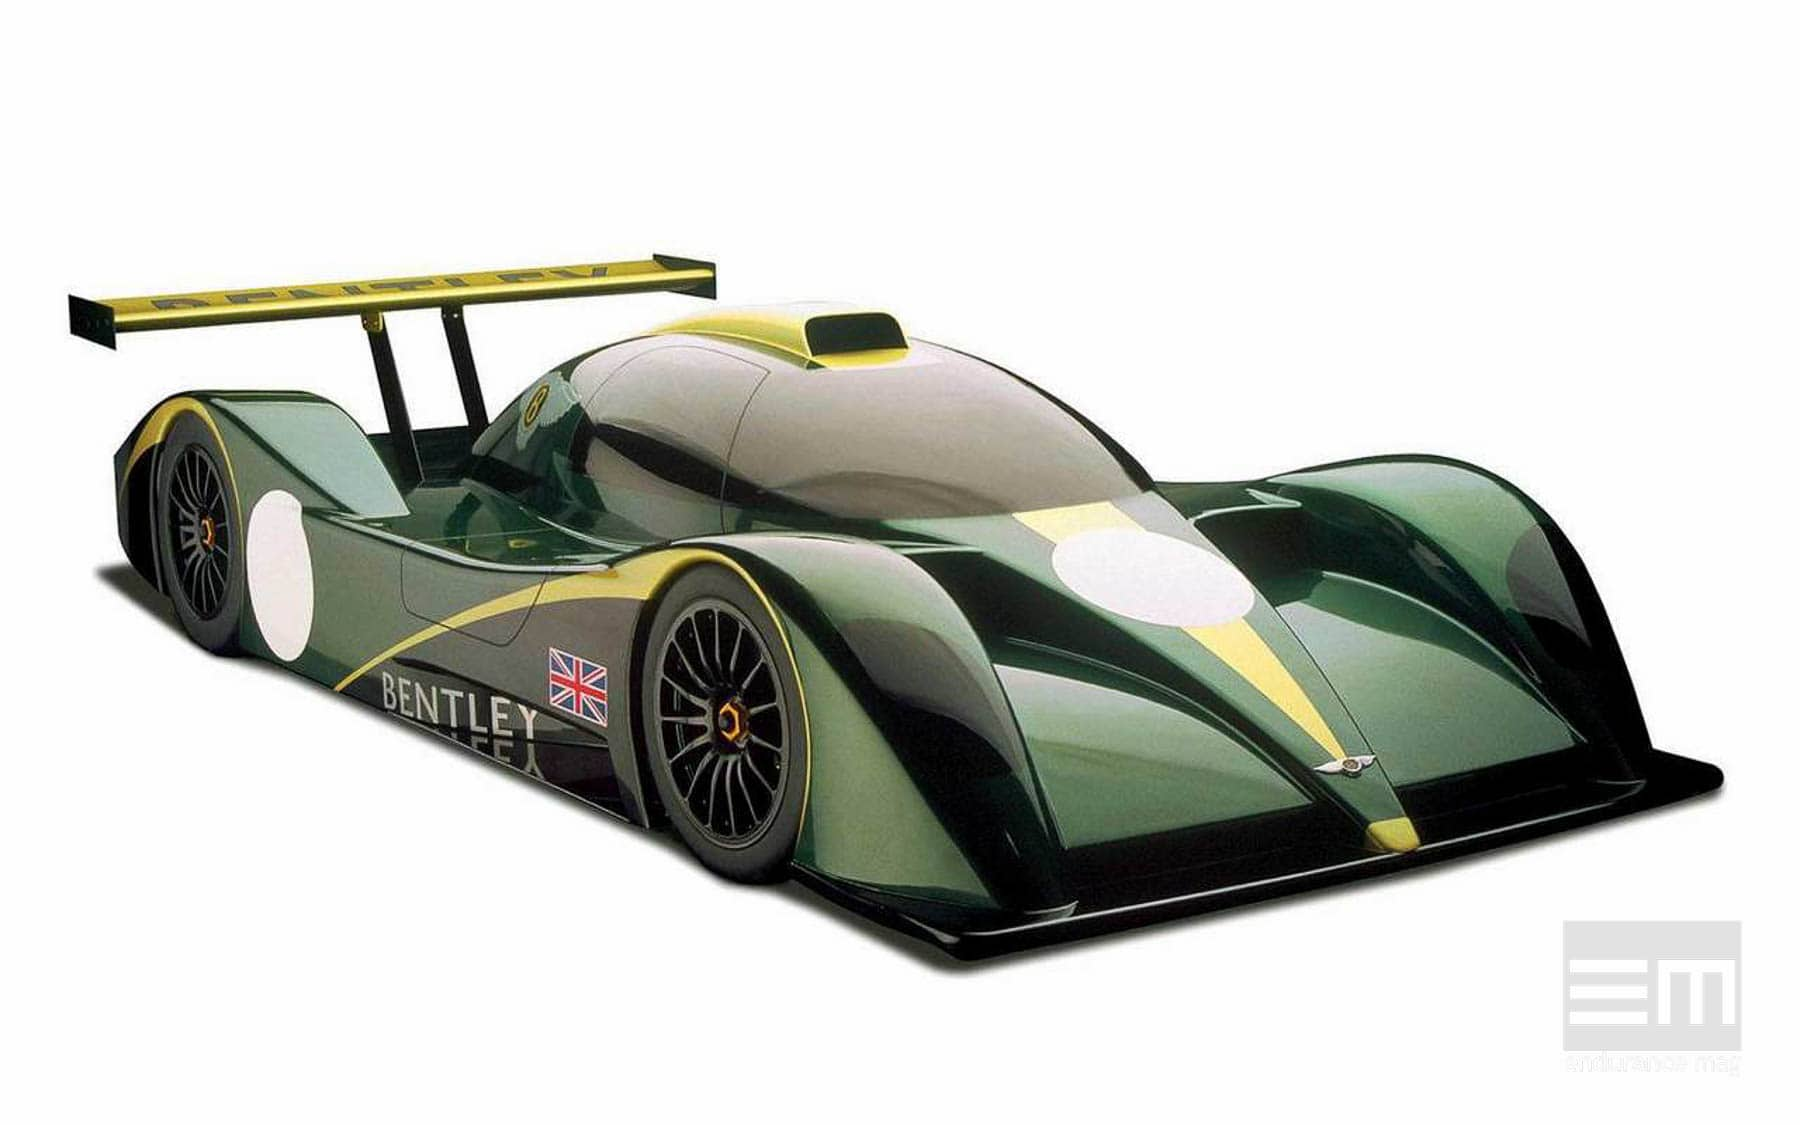 Bentley-EXP-Speed8-2001-LeMans-3